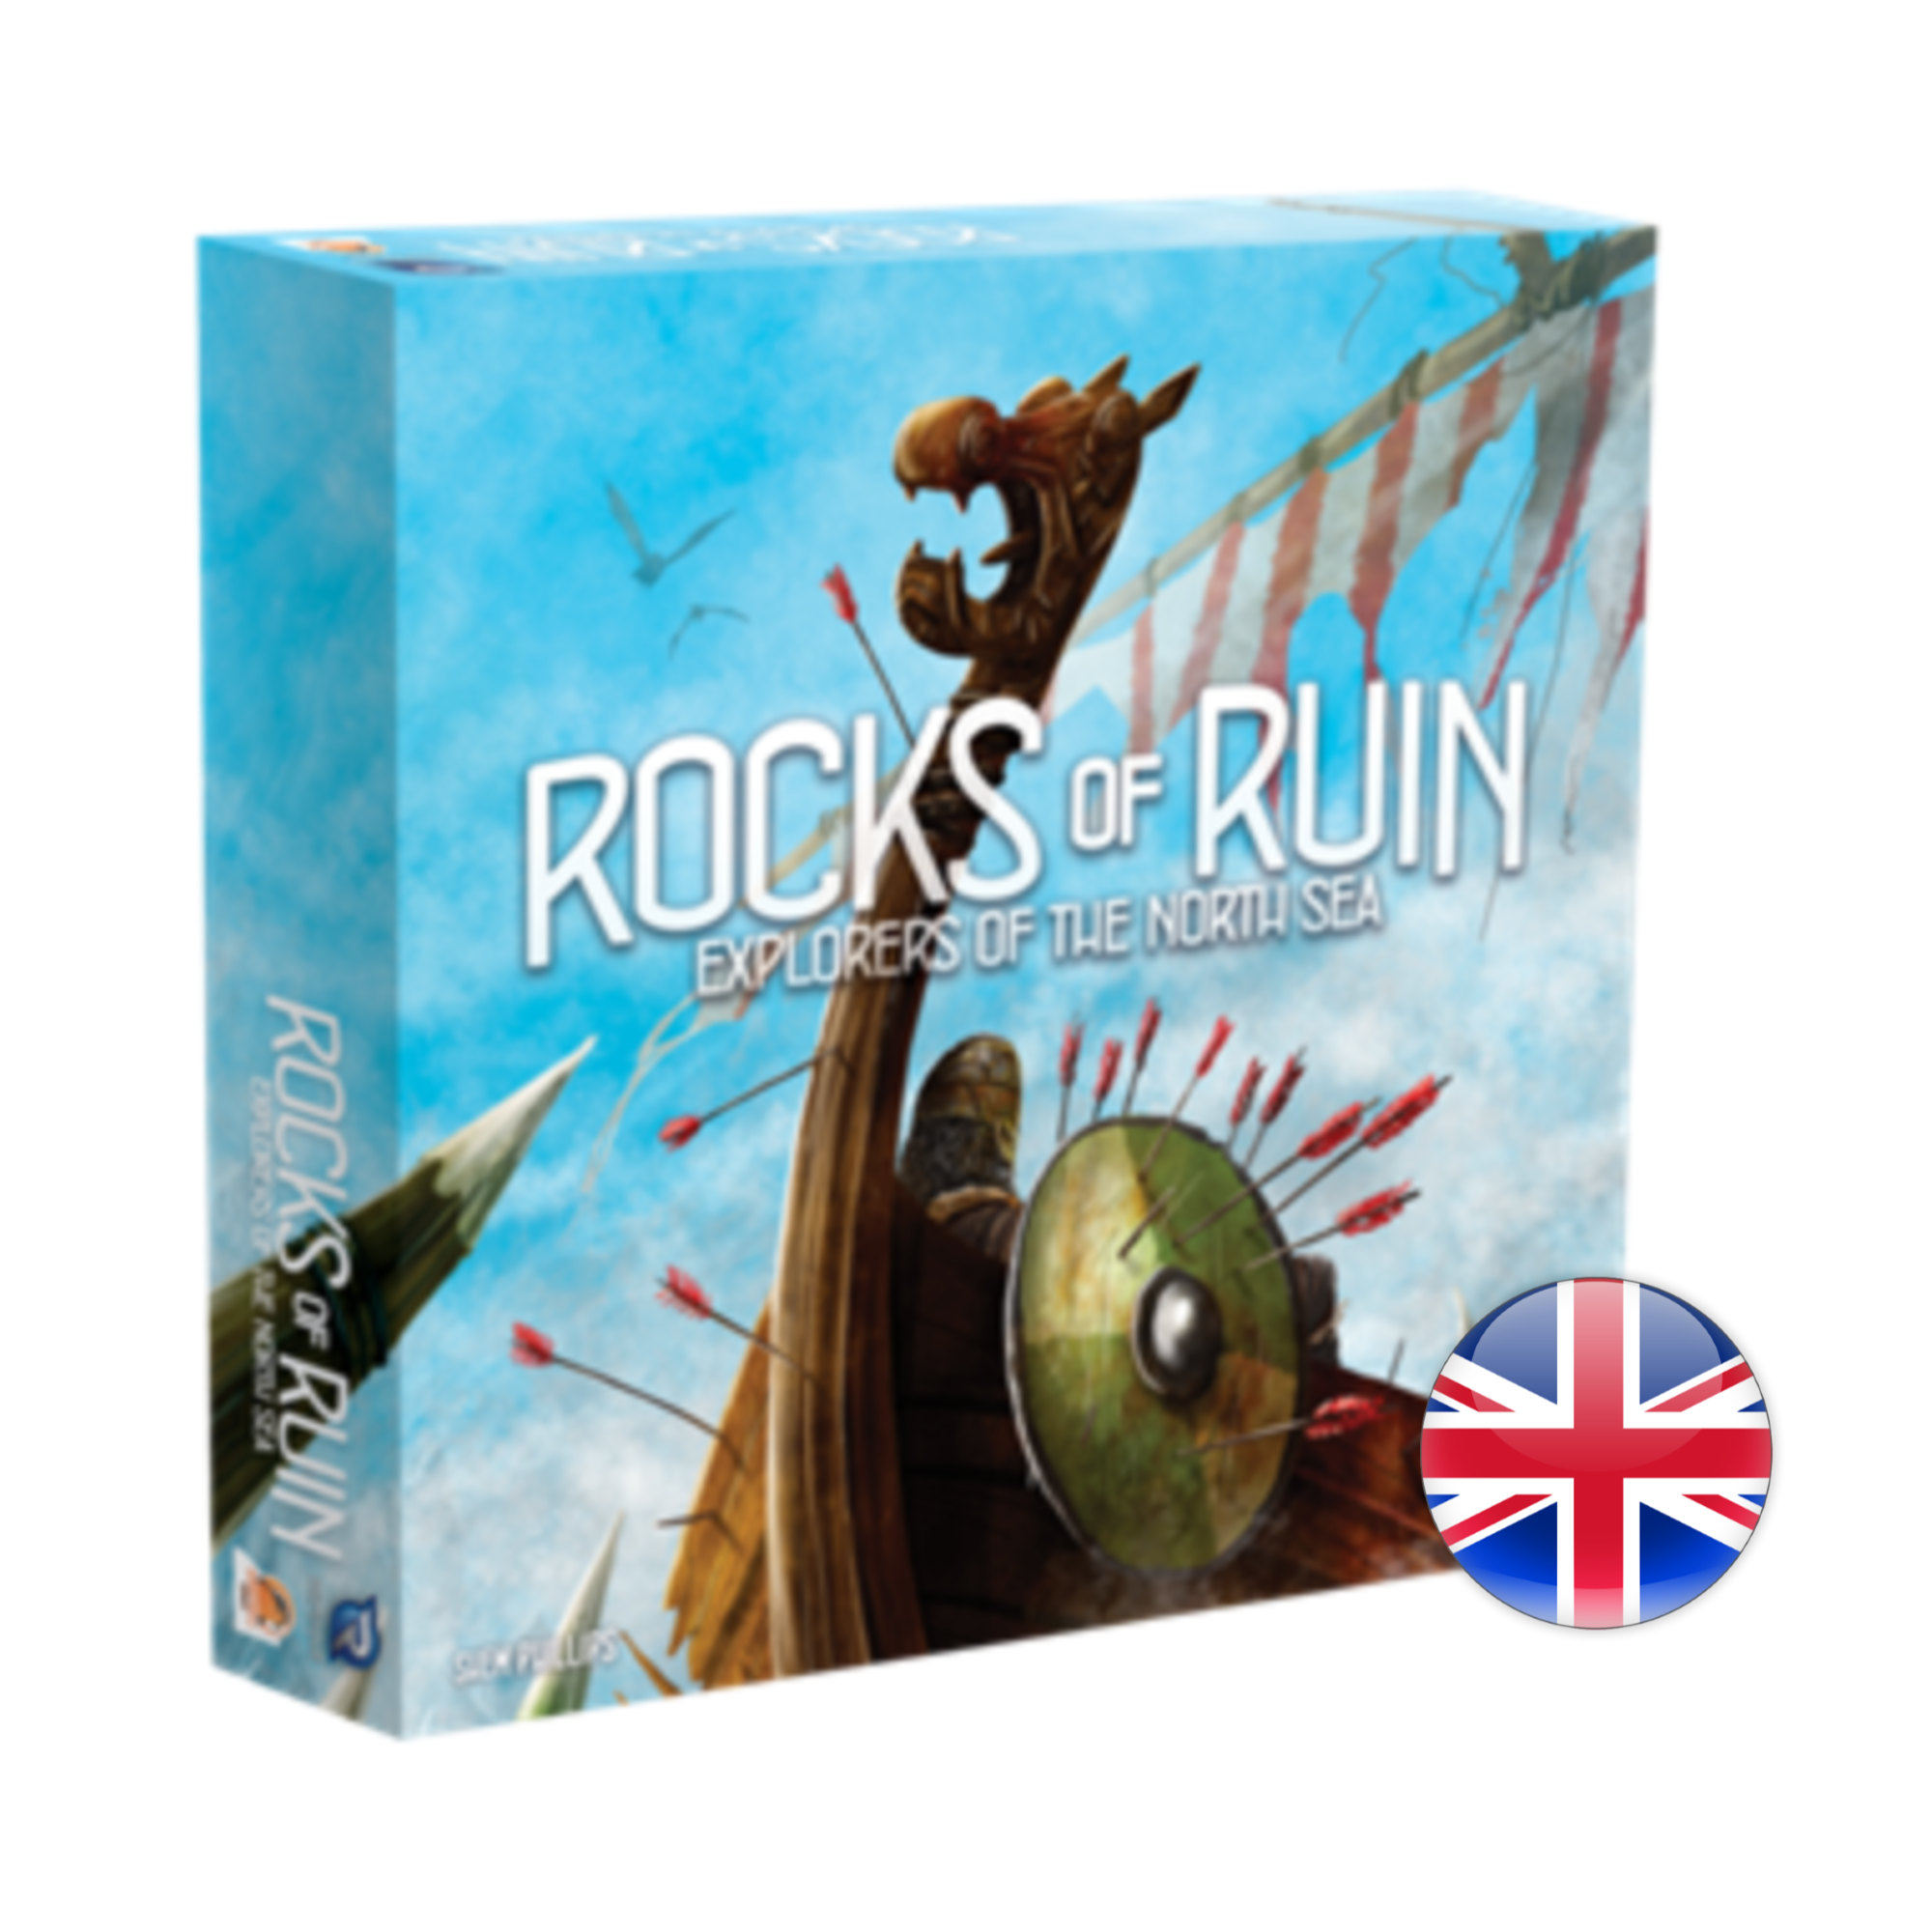 Renegade Explorers of the North Sea: Rocks of Ruin